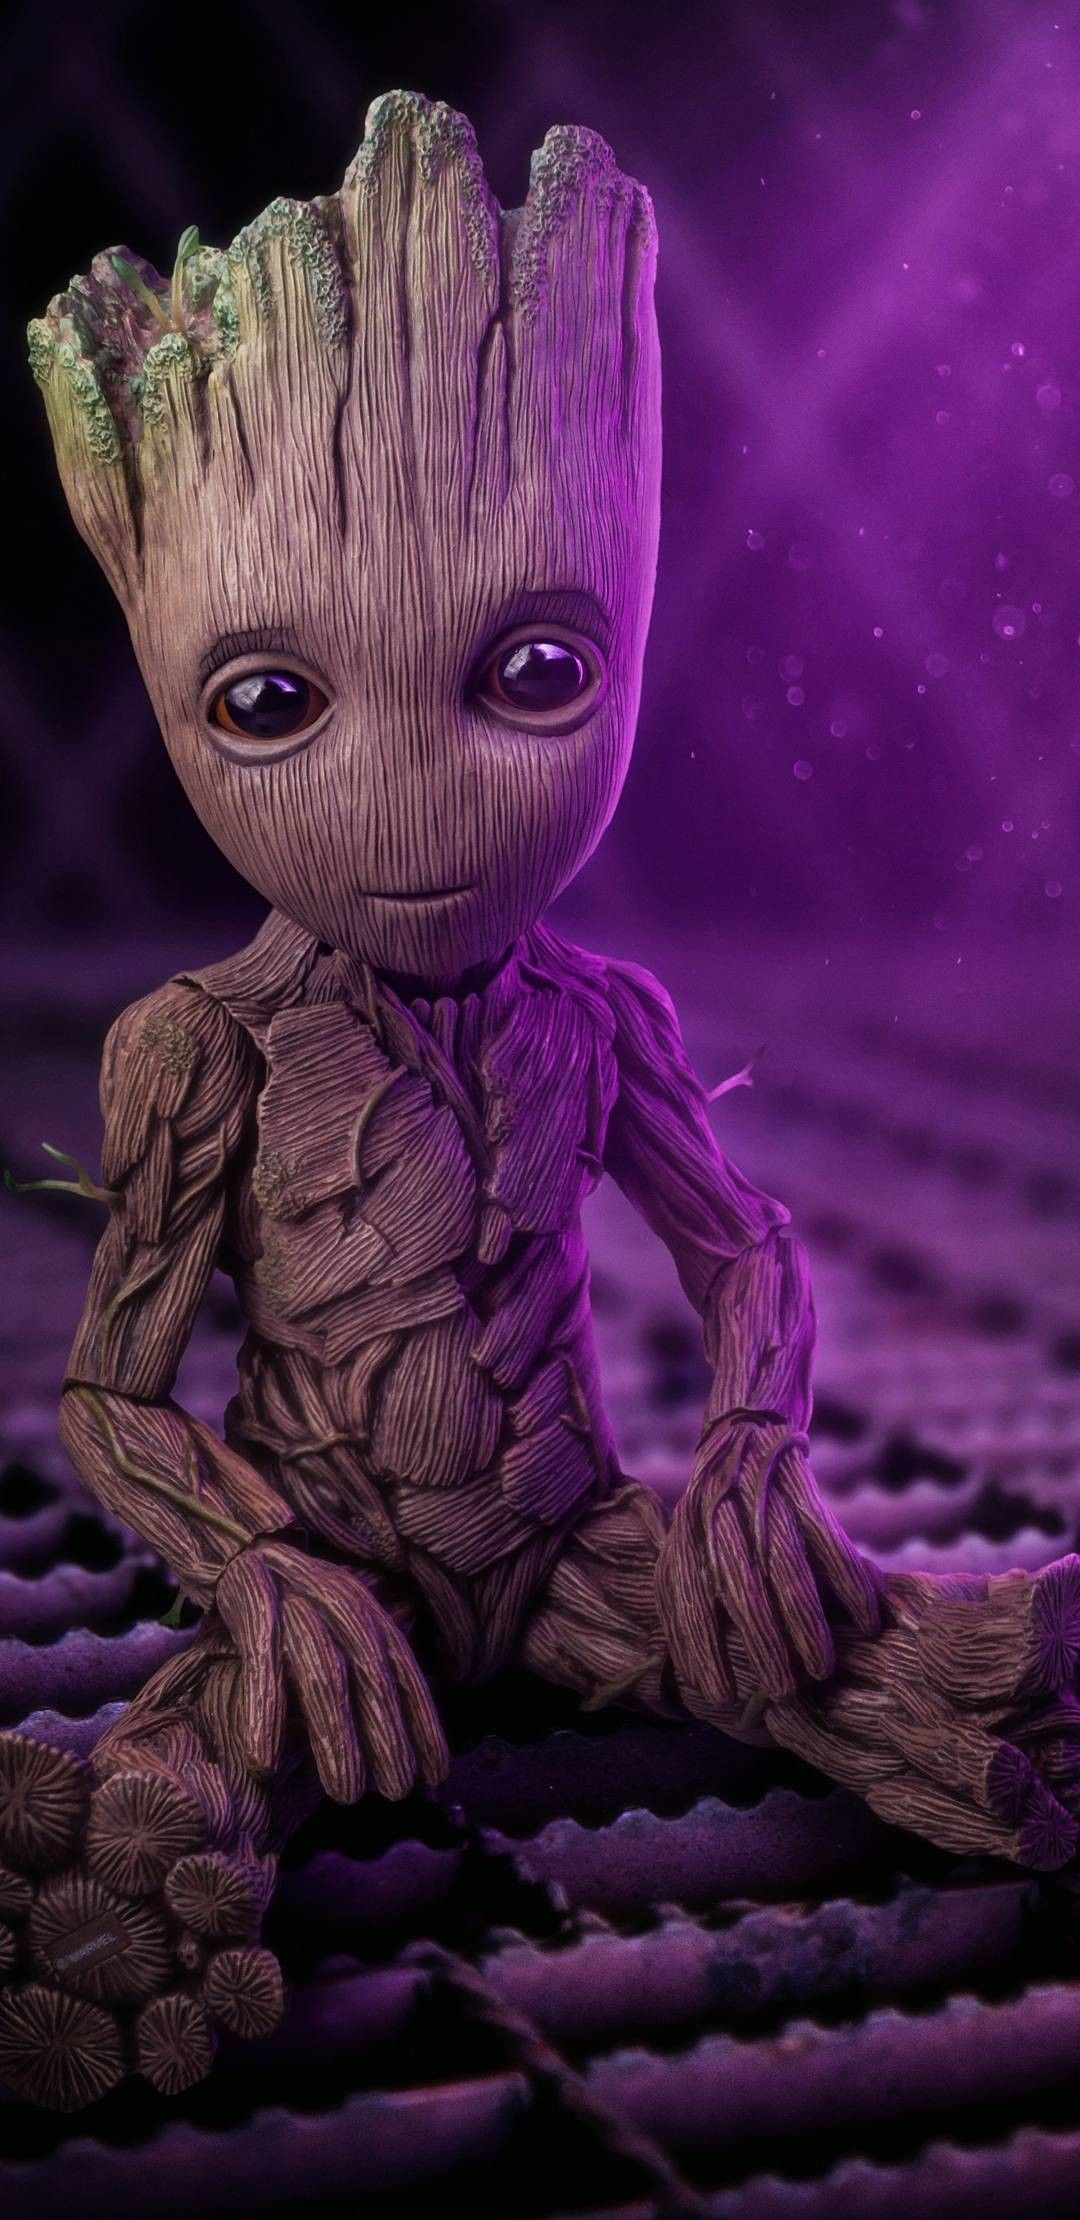 Pin by Moonie65 on Cellphone IPhone wallpapers | Groot ...